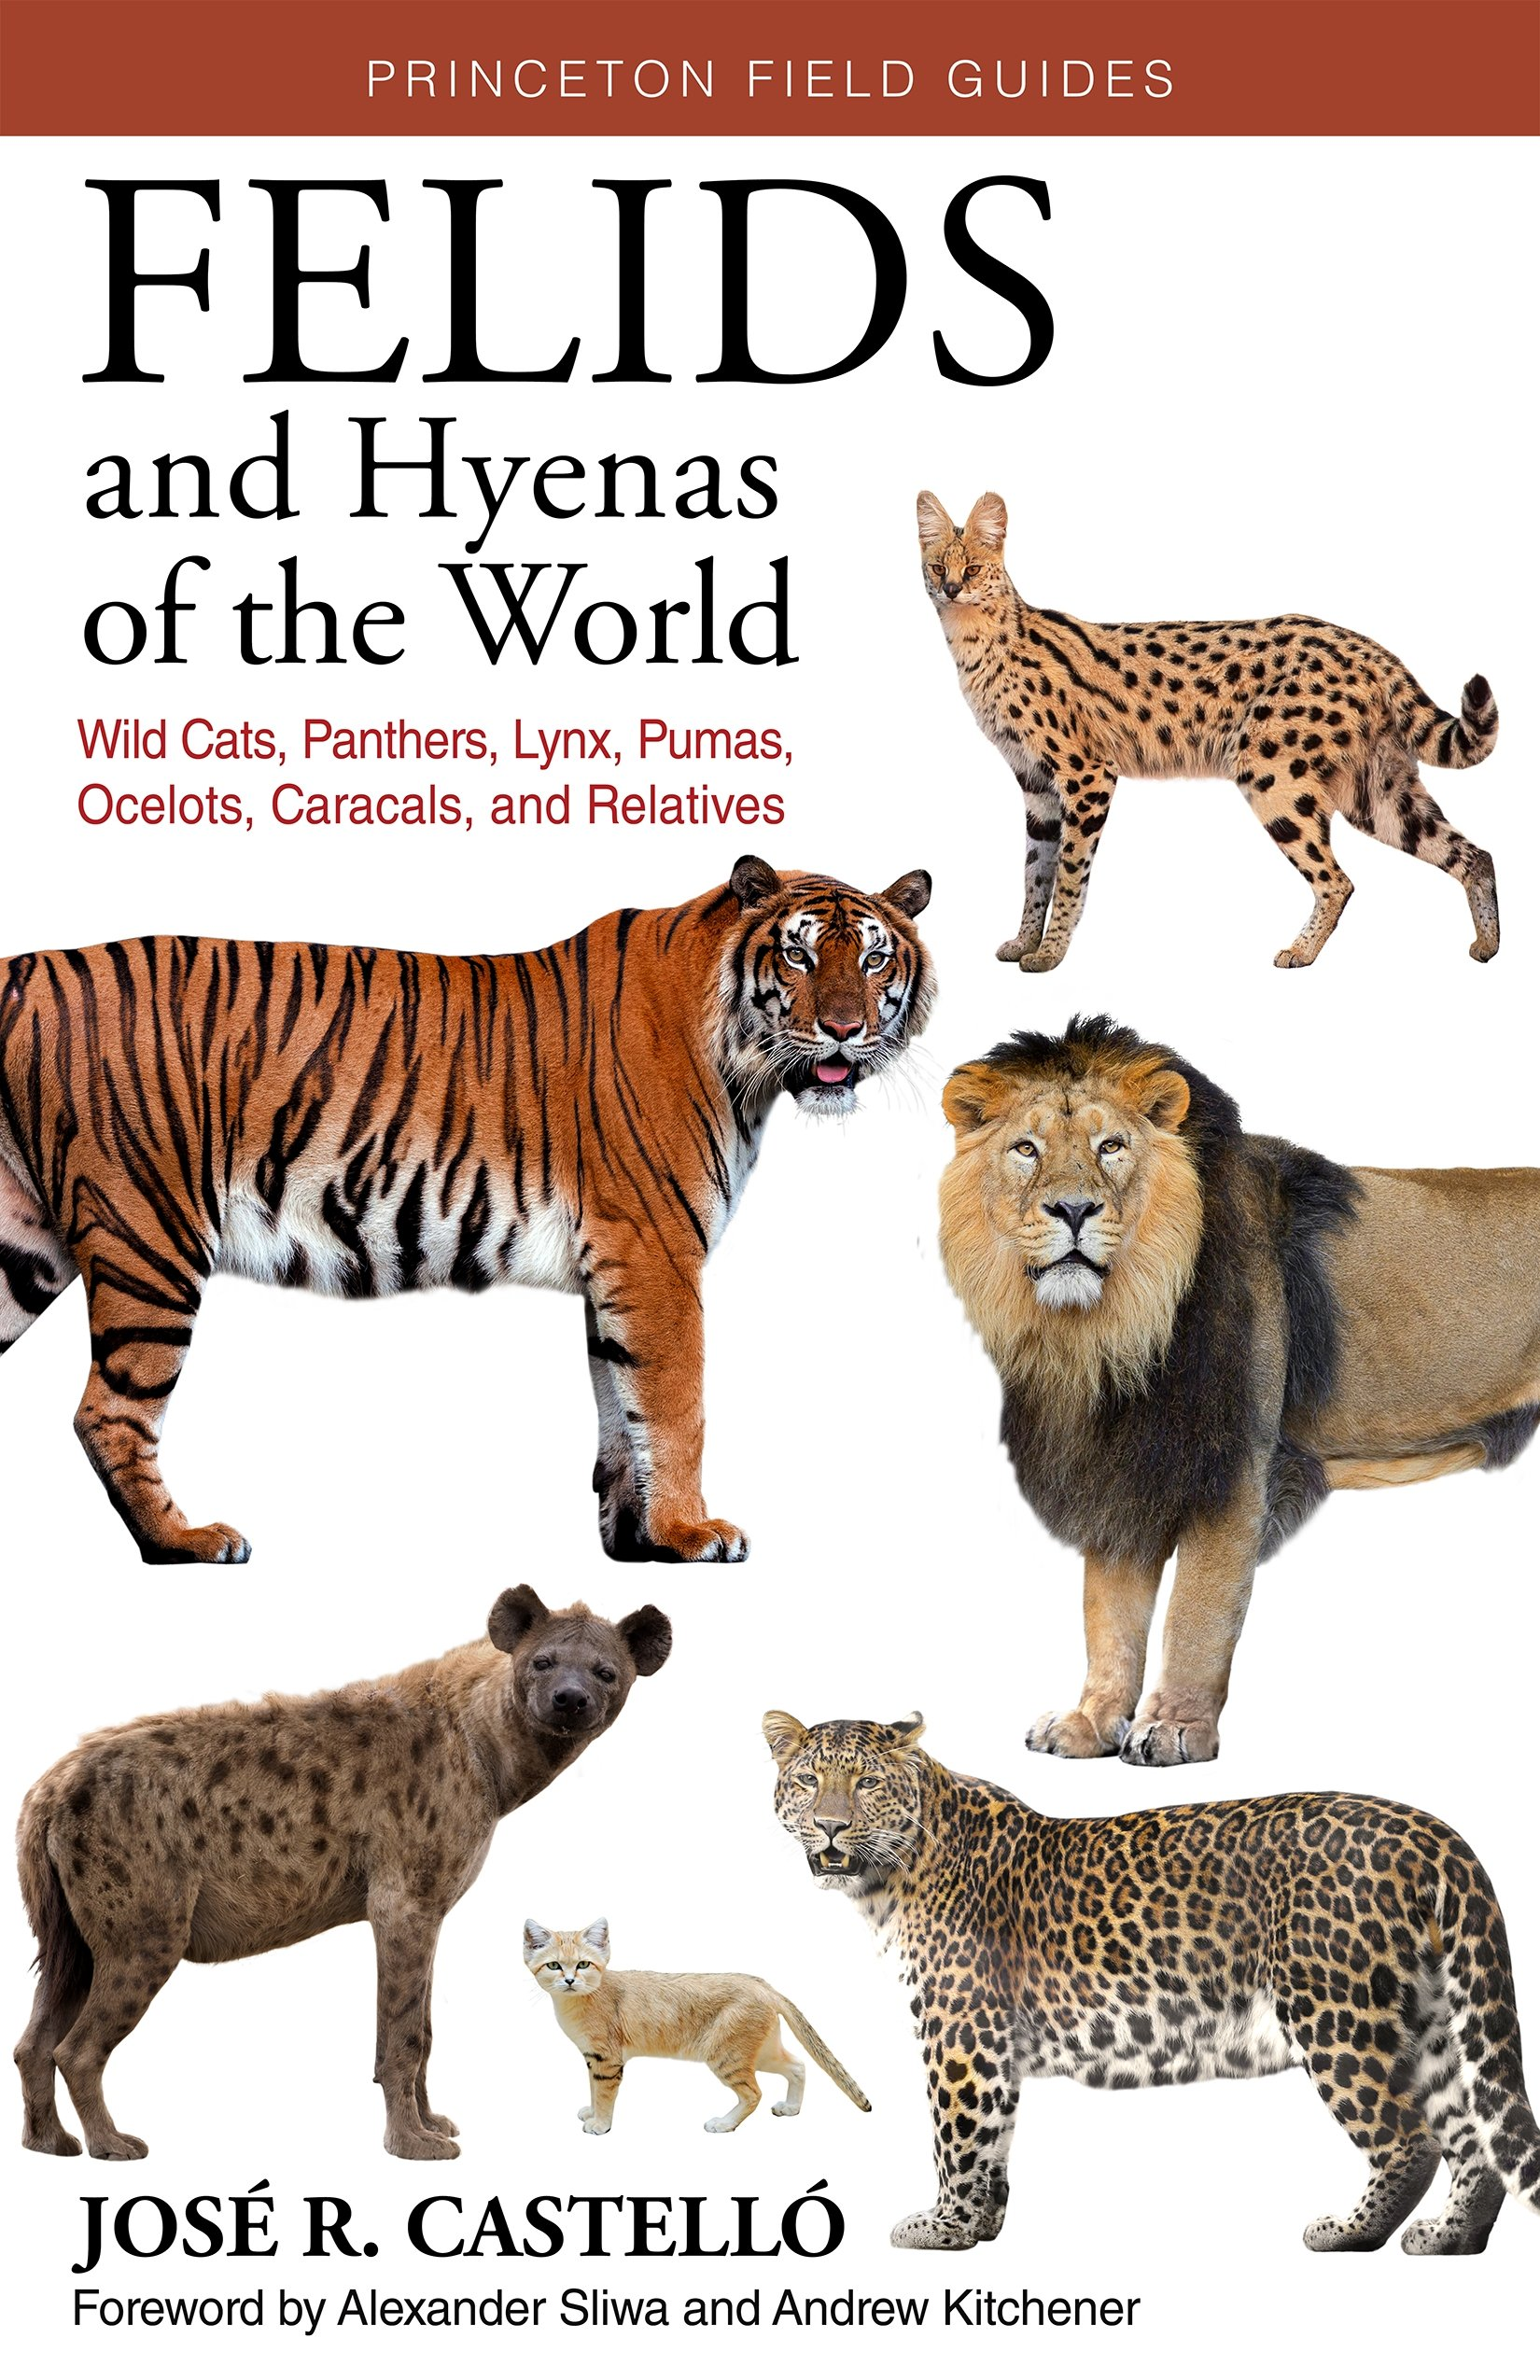 Felids and Hyenas of the World by Jose R. Castello 2020